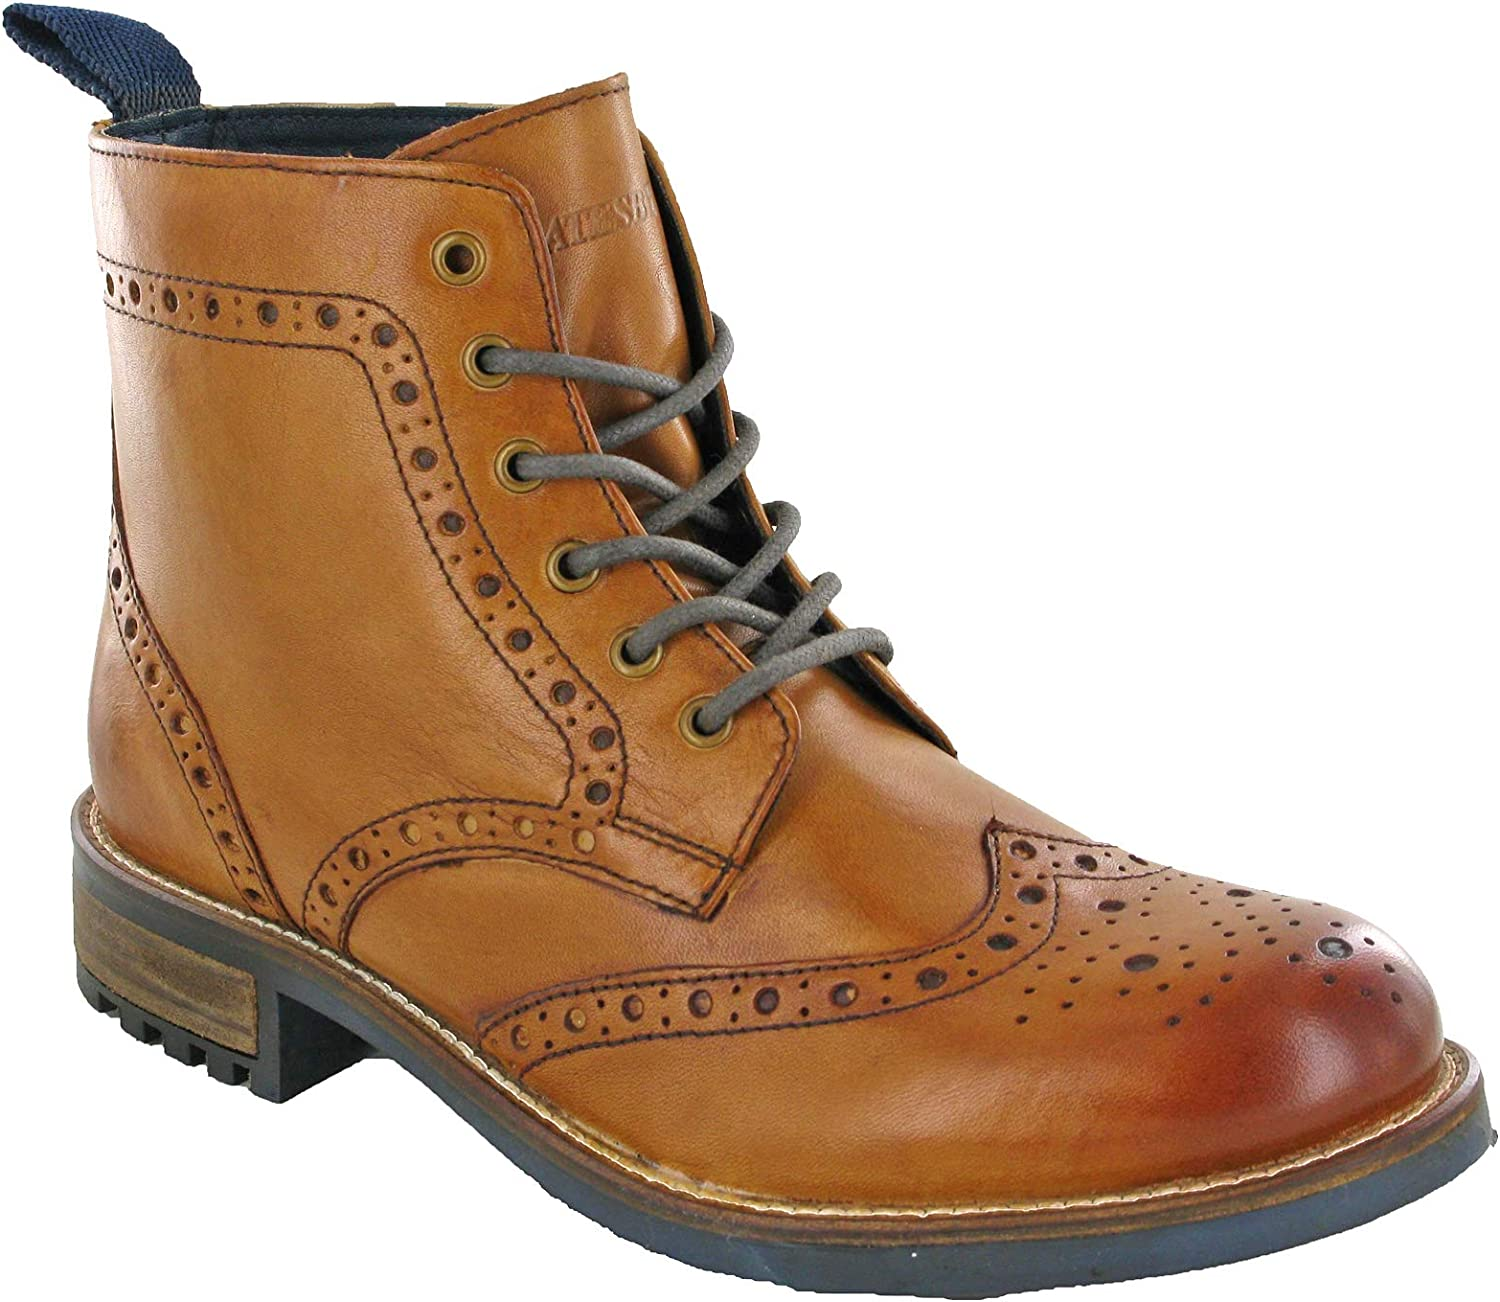 Derby Brogue Leather Boots Mens Classic Ankle Padded UK 7-12: Amazon.co.uk:  Shoes & Bags